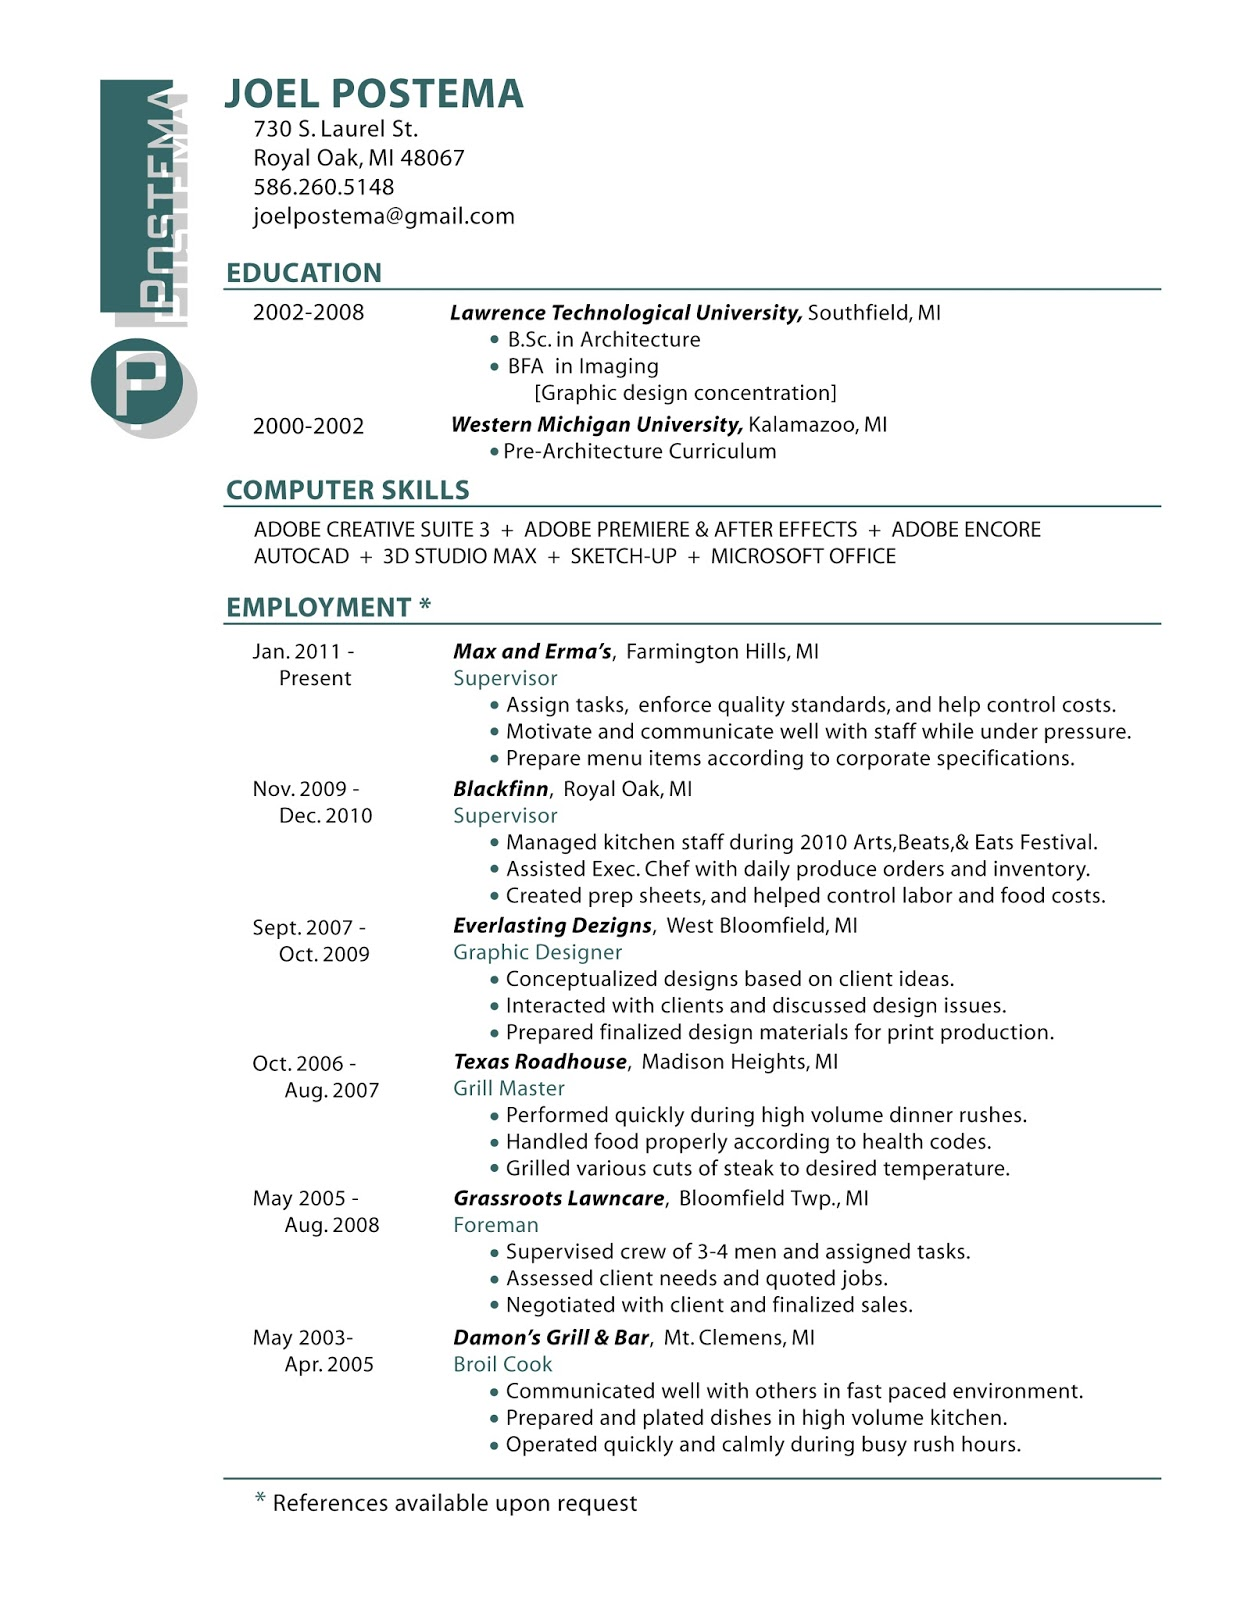 informatica administrator resume sample coverletter resume for job informatica administrator resume informatica interview questions geekinterview - Informatica Administration Sample Resume